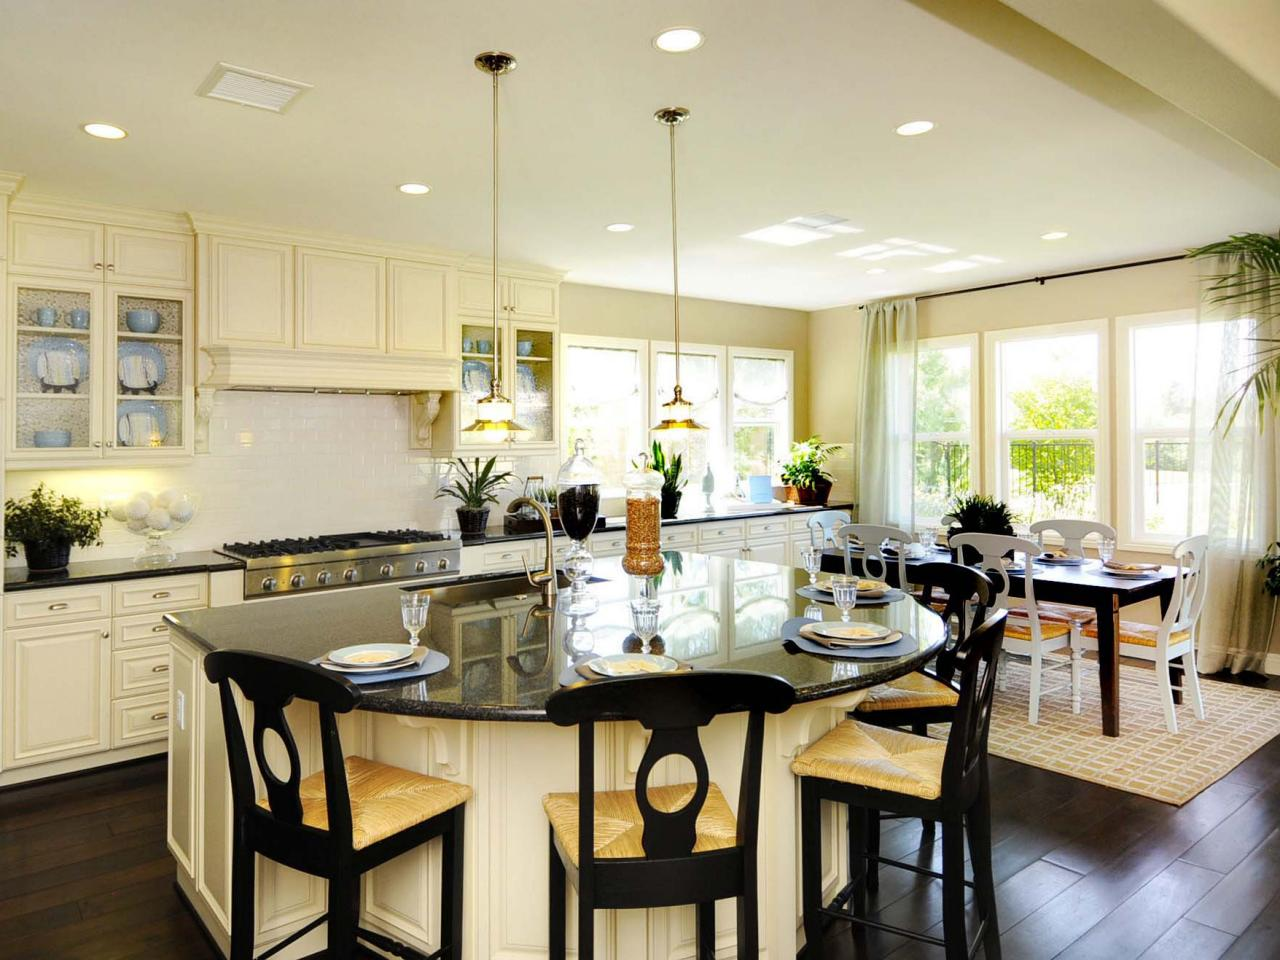 Kitchen Island Design Kitchen Island Design Ideas Pictures Options & Tips  Hgtv